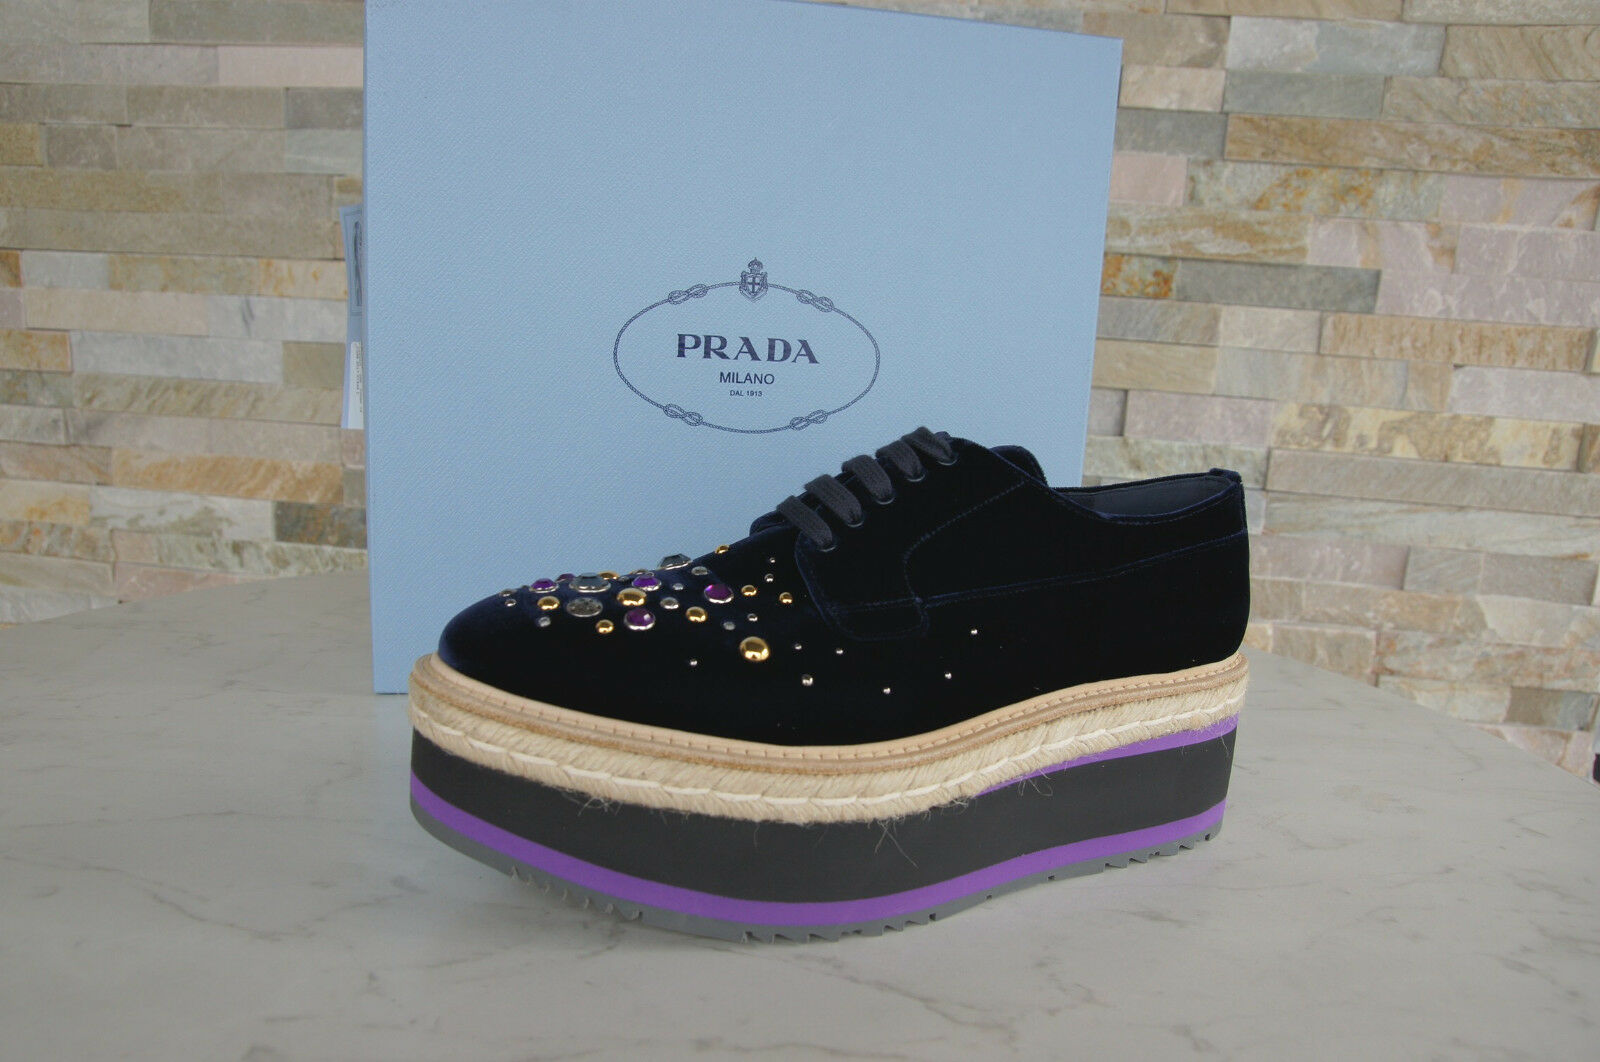 Prada 39,5 Platform Lace up 1e895h shoes shoes shoes Velvet Studs bluee New Formerly Rrp ed835c